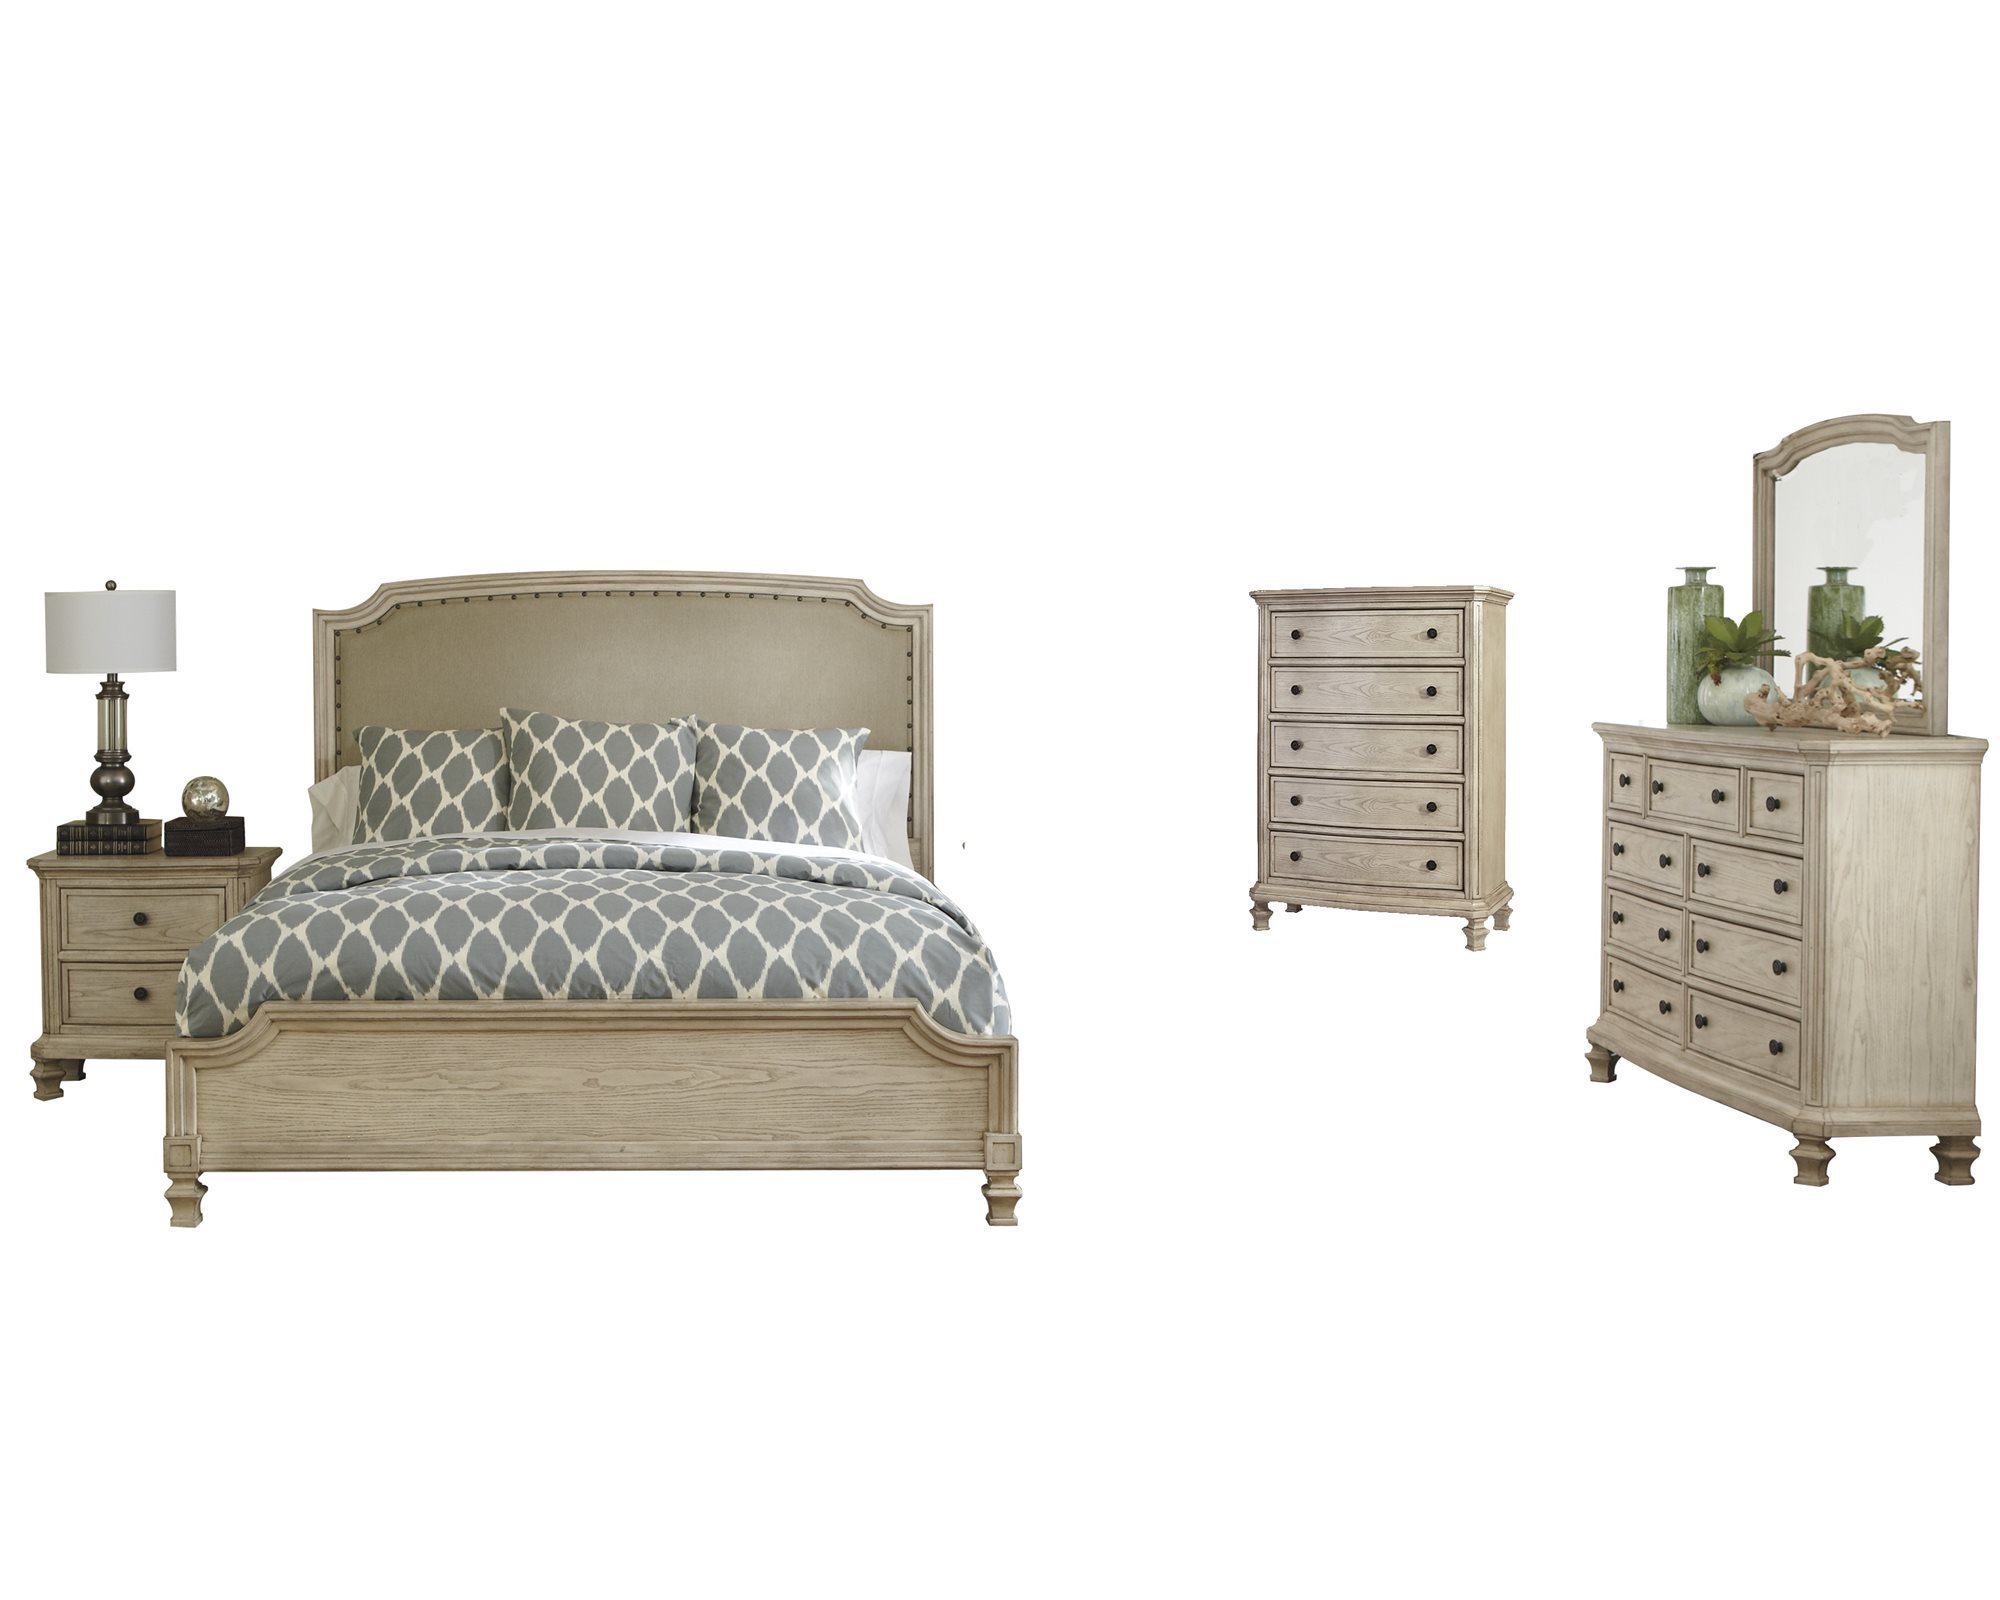 ashley furniture demarlos 5 pc bedroom set queen upholstered bed 1 nightstand dresser mirror chest parchment white